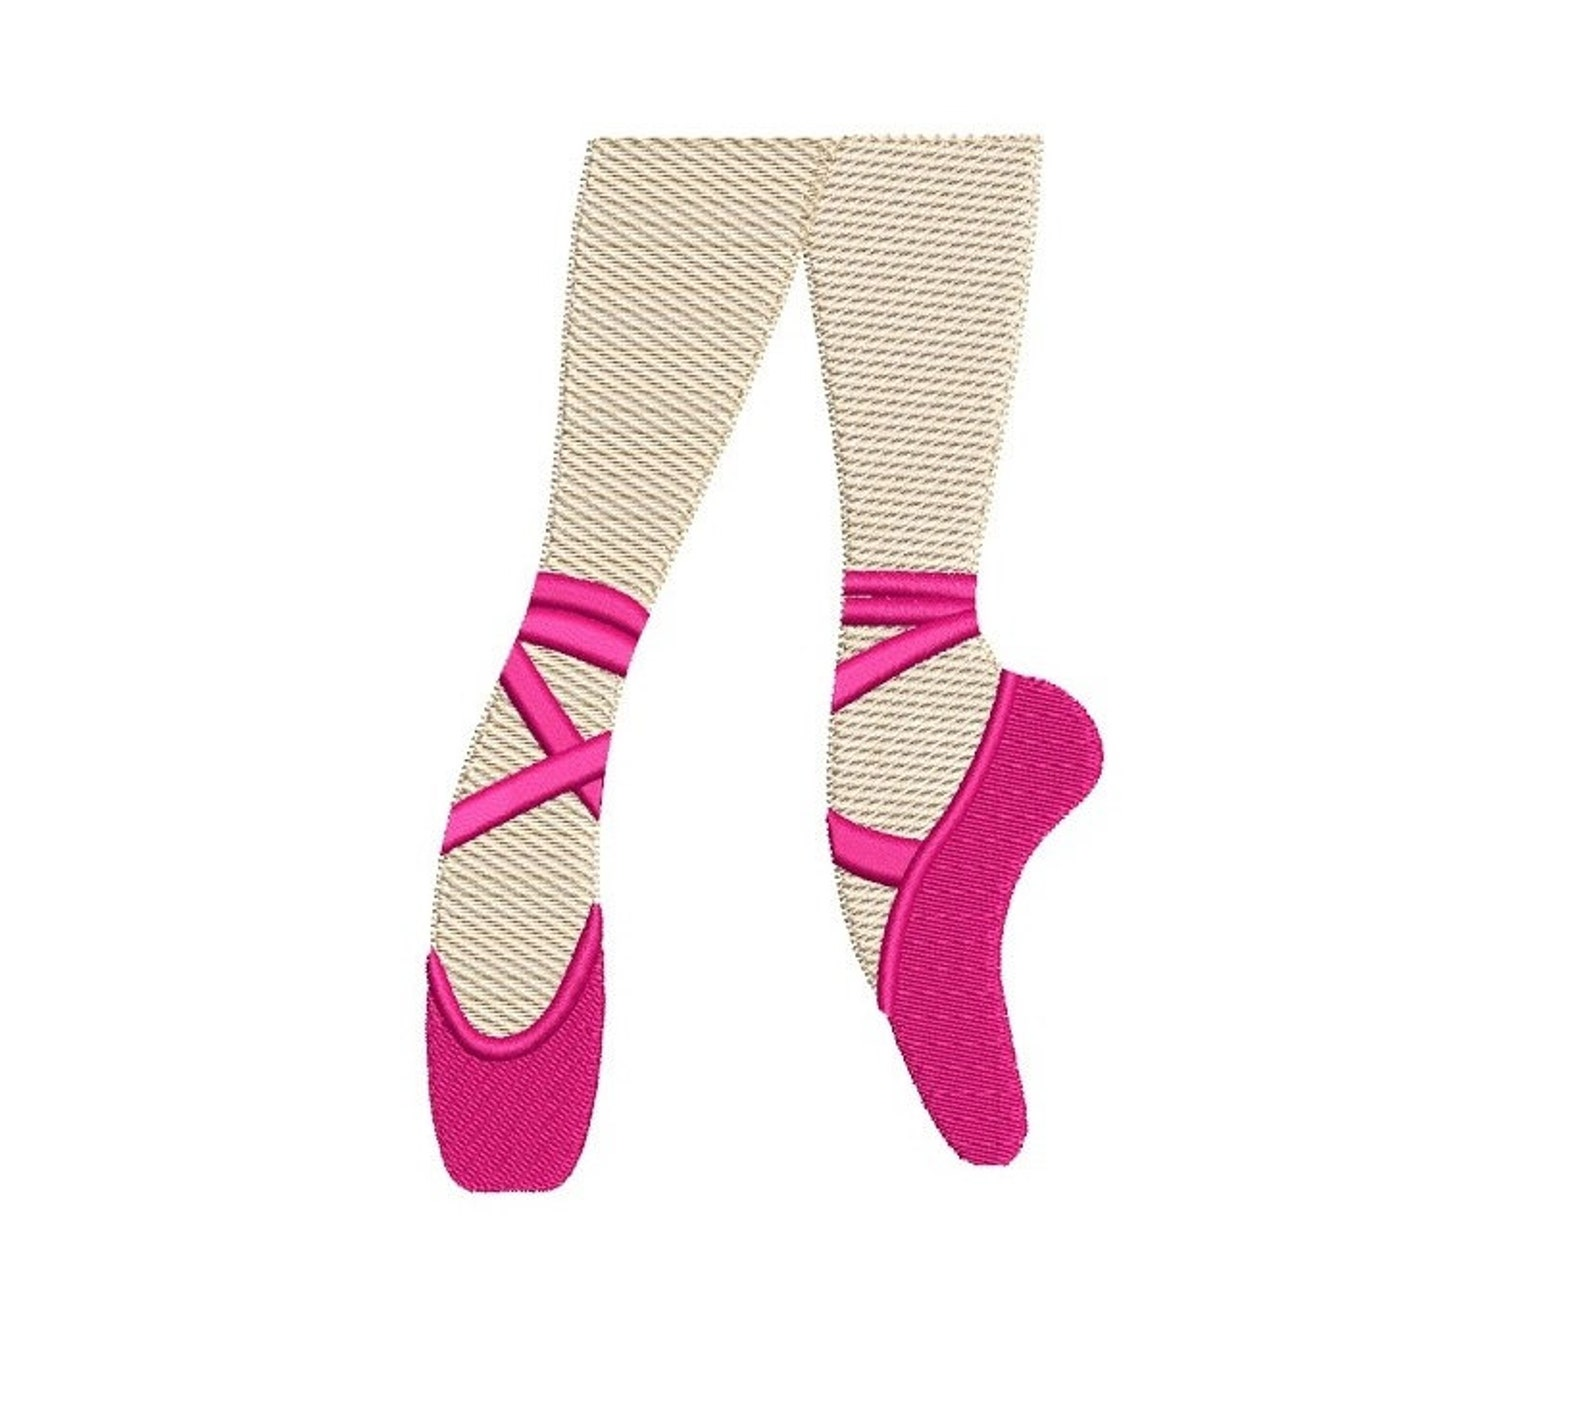 ballet shoes filled machine embroidery digitized design pattern - instant download- 4x4 , 5x7, 6x10